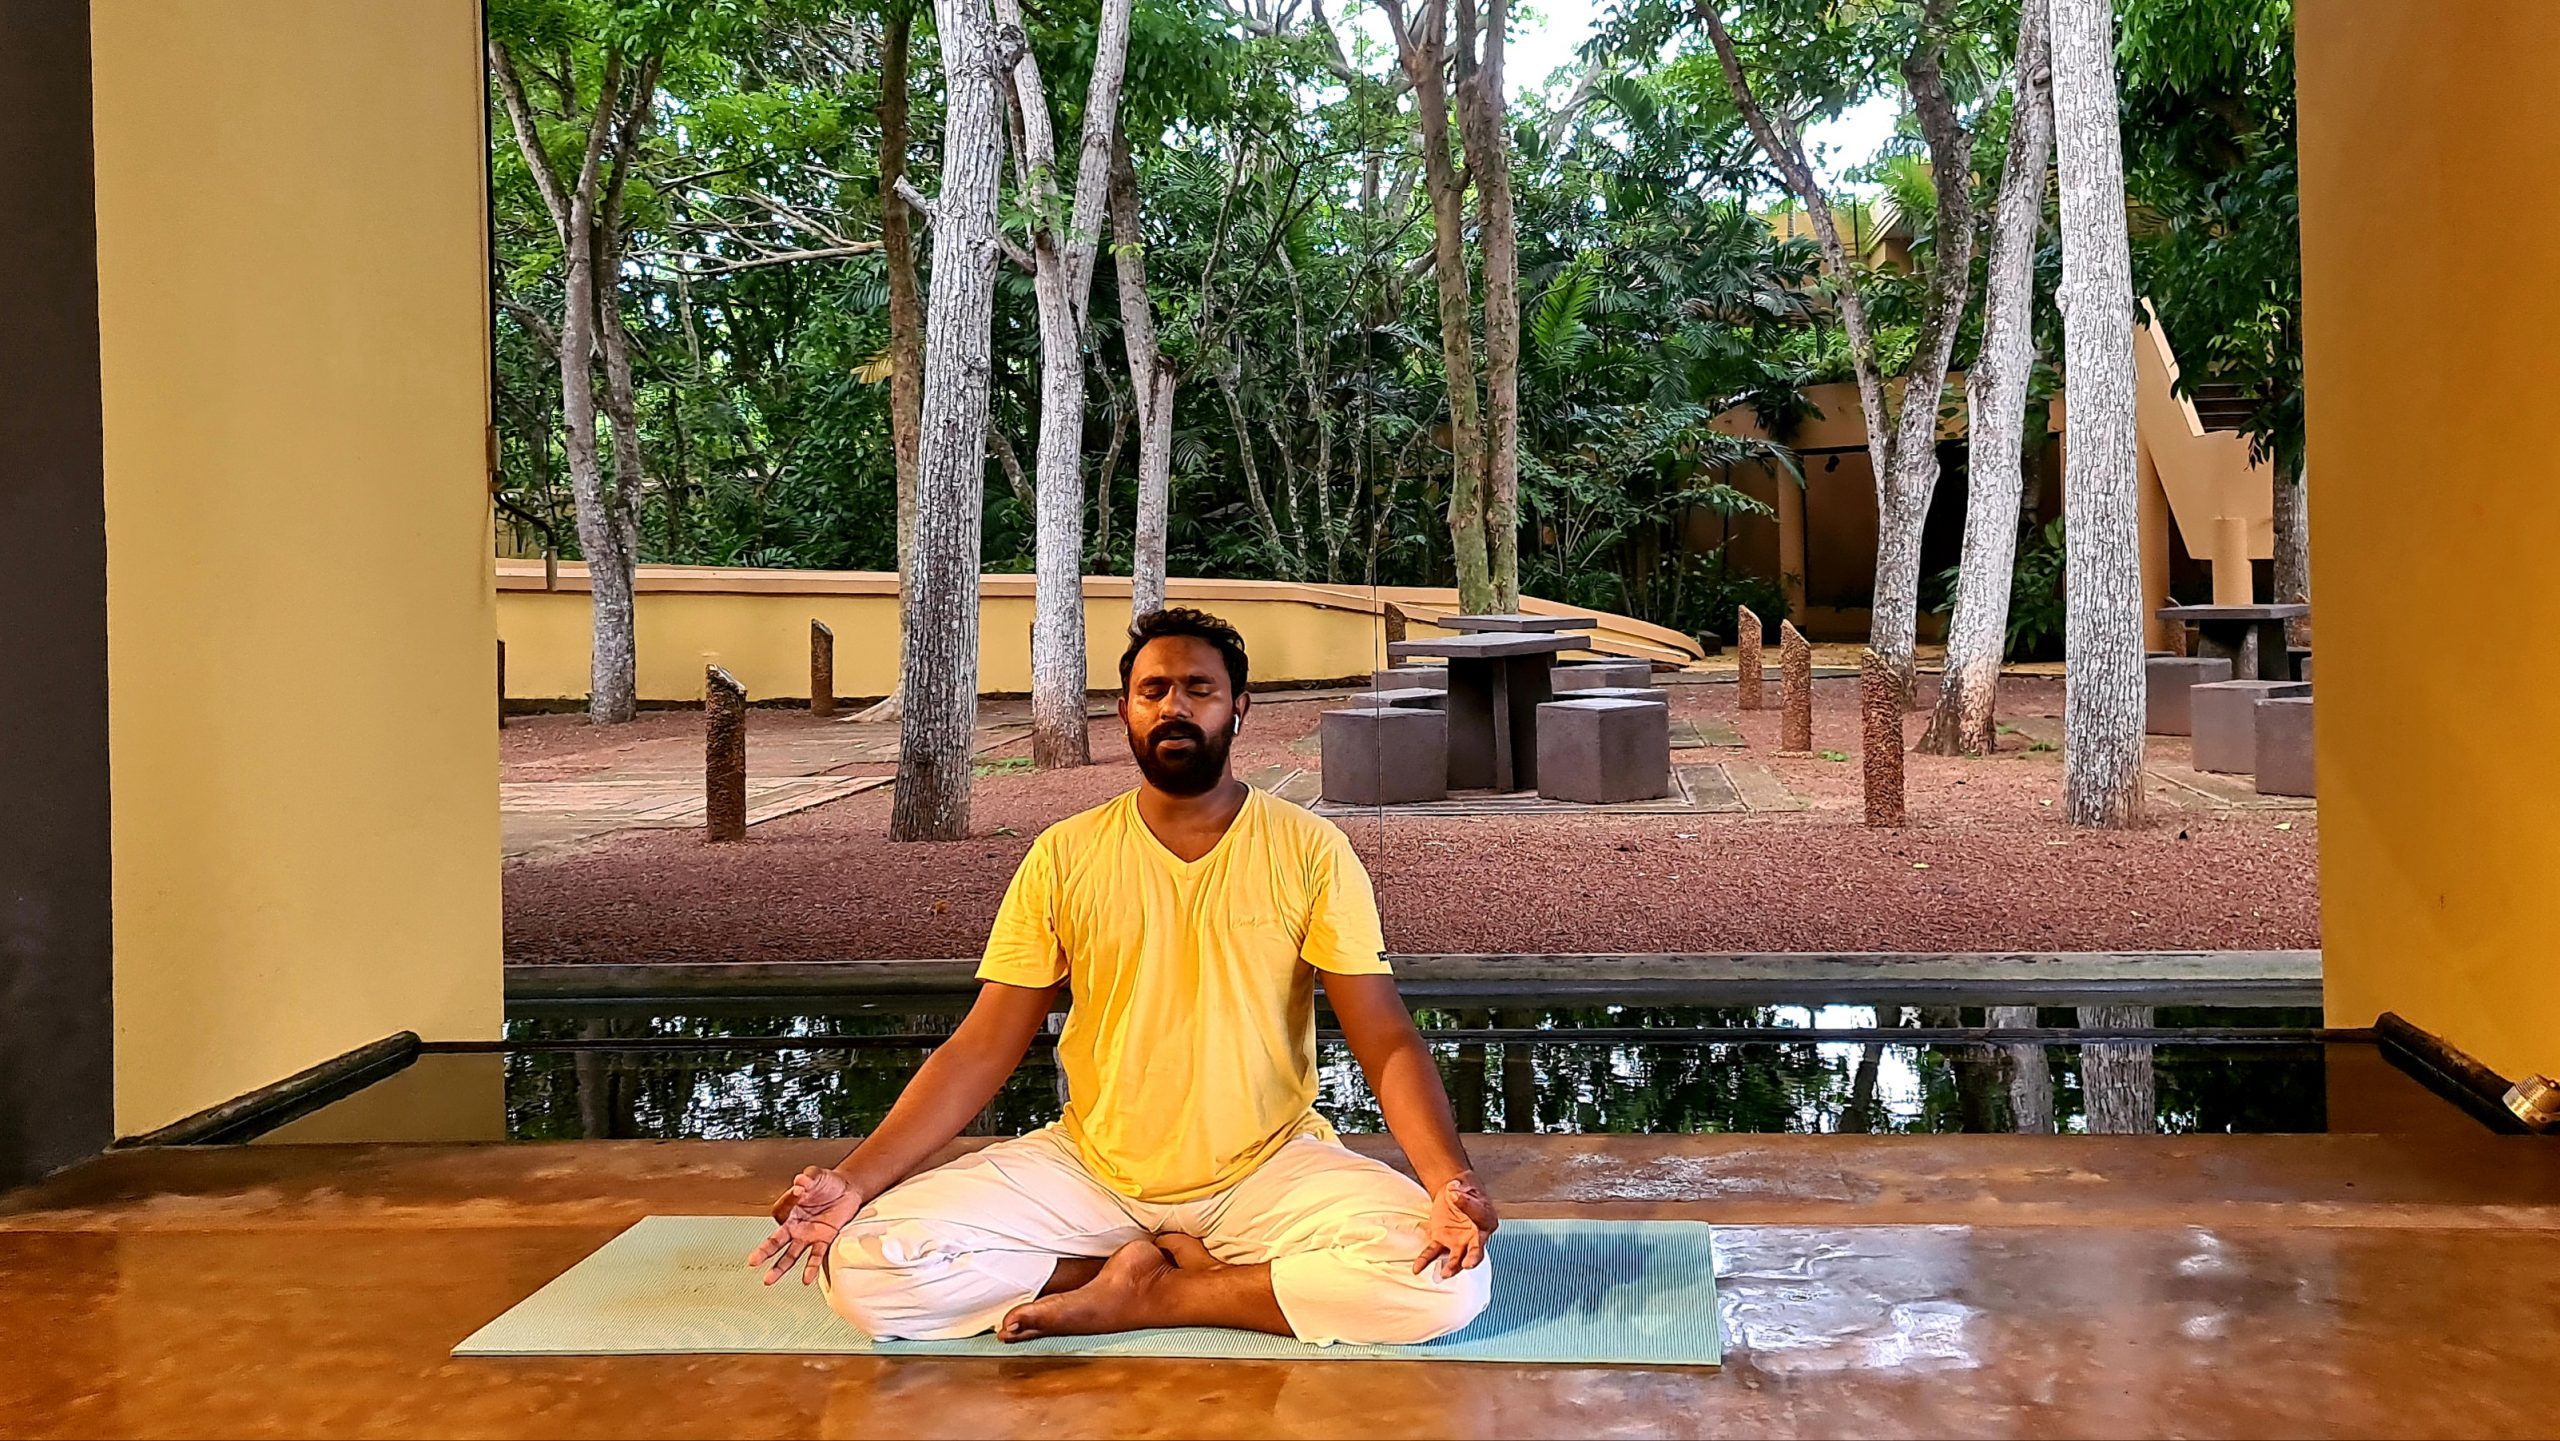 Amesh seated in cross legged Yoga asana